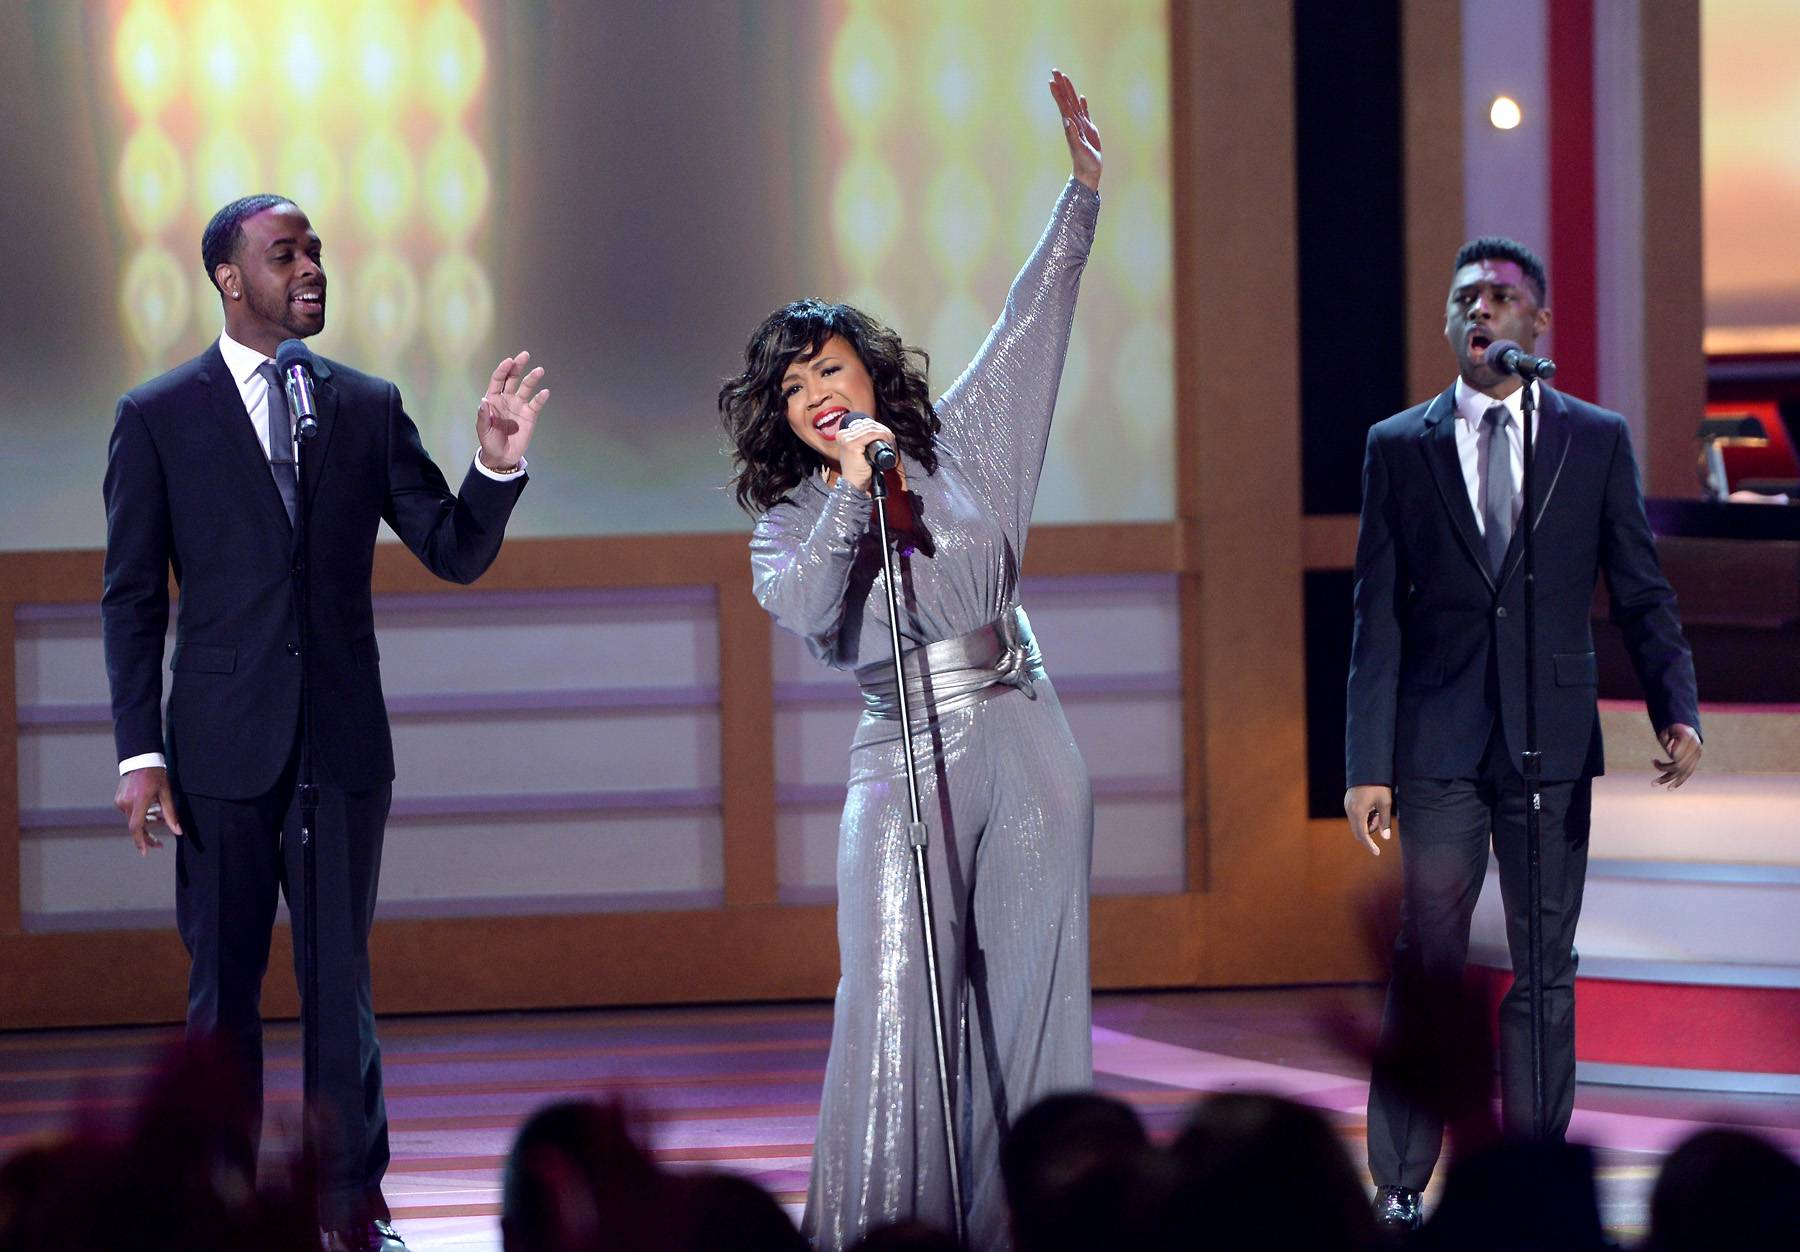 """Need A Lilttle More Jesus? We Got You - Pop and gospel trailblazer Erica Campbell performed the first single lifted off her first solo album, """"A Little More Jesus."""" The drum-heavy record coupled with Campbell's always on point vocals gave us all the Jesus we needed. On Sunday April 6 at 8P/7C, it's your turn!(Photo: Jason Kempin/Getty Images for BET)"""